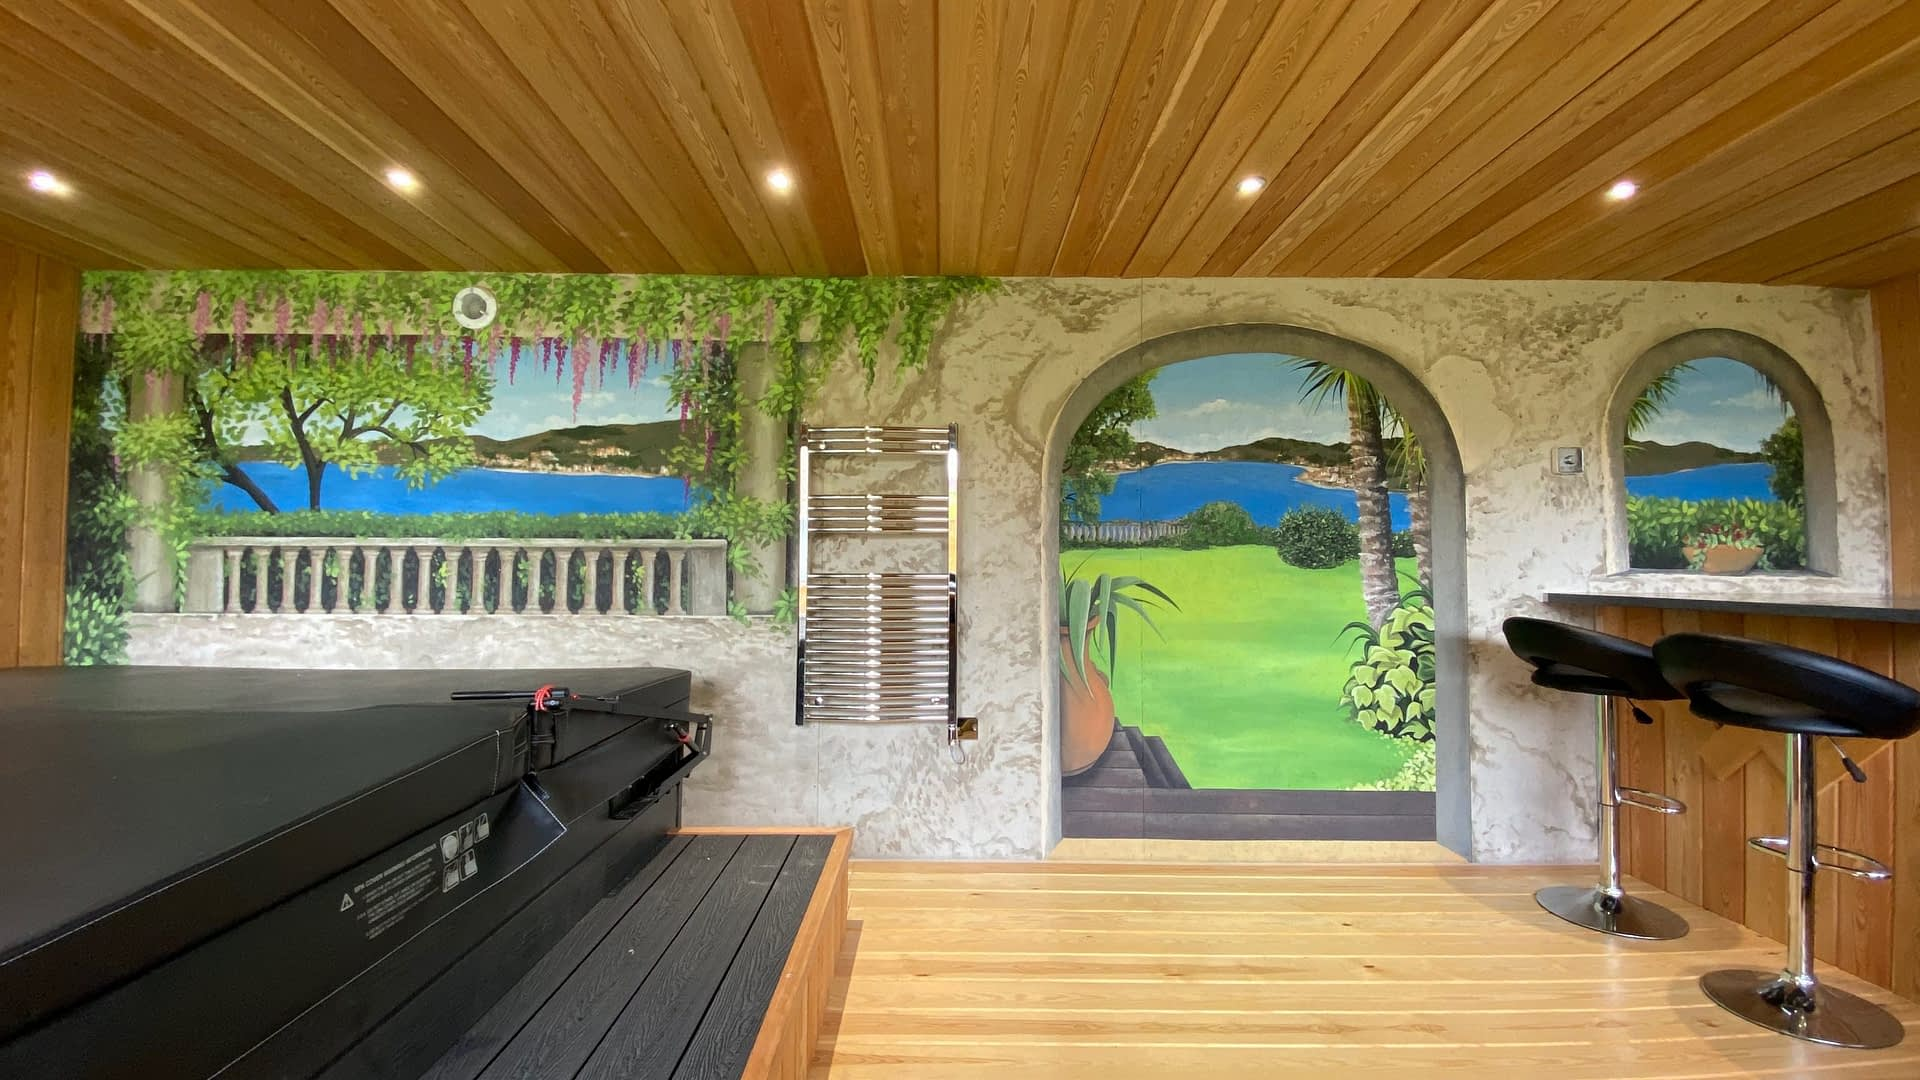 Garden / Hot Tub Room Mural